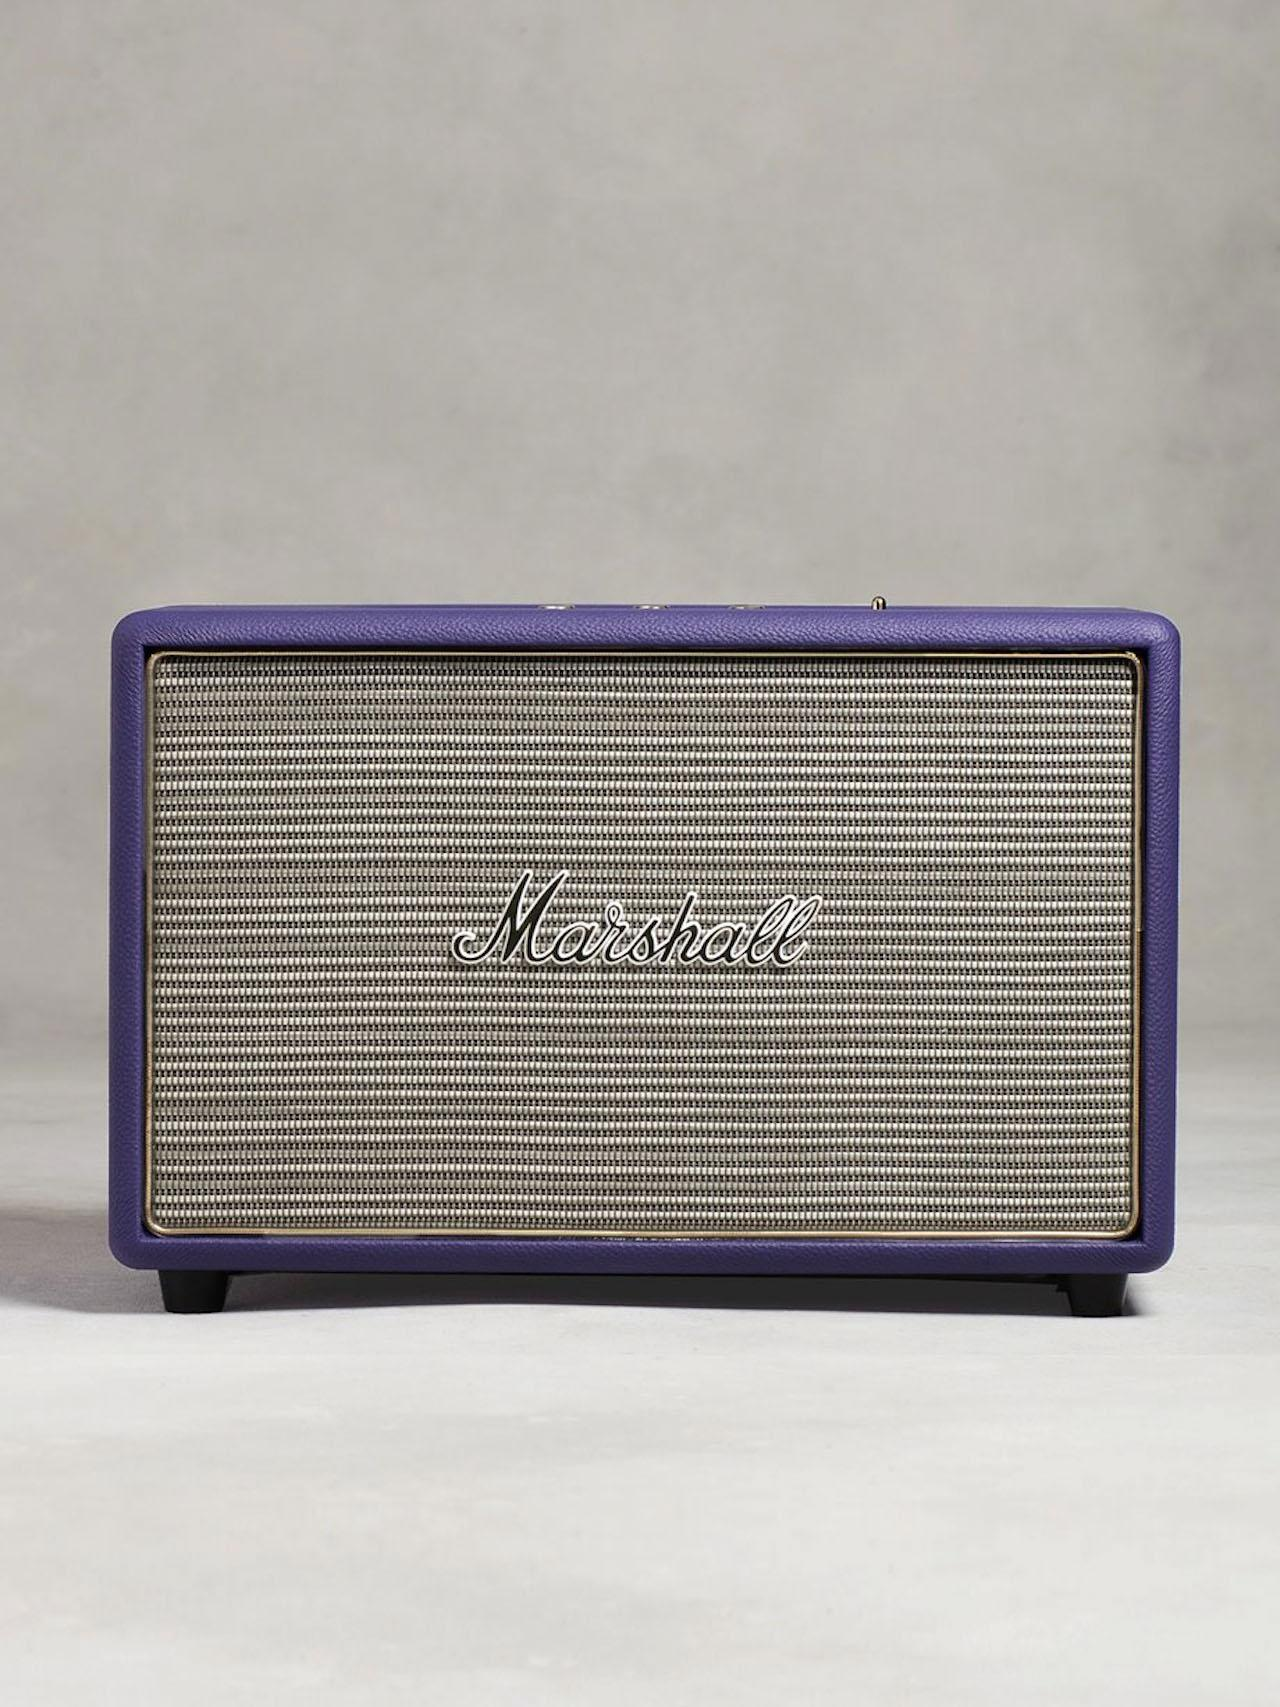 Limited Run Marshall Hanwell Speaker